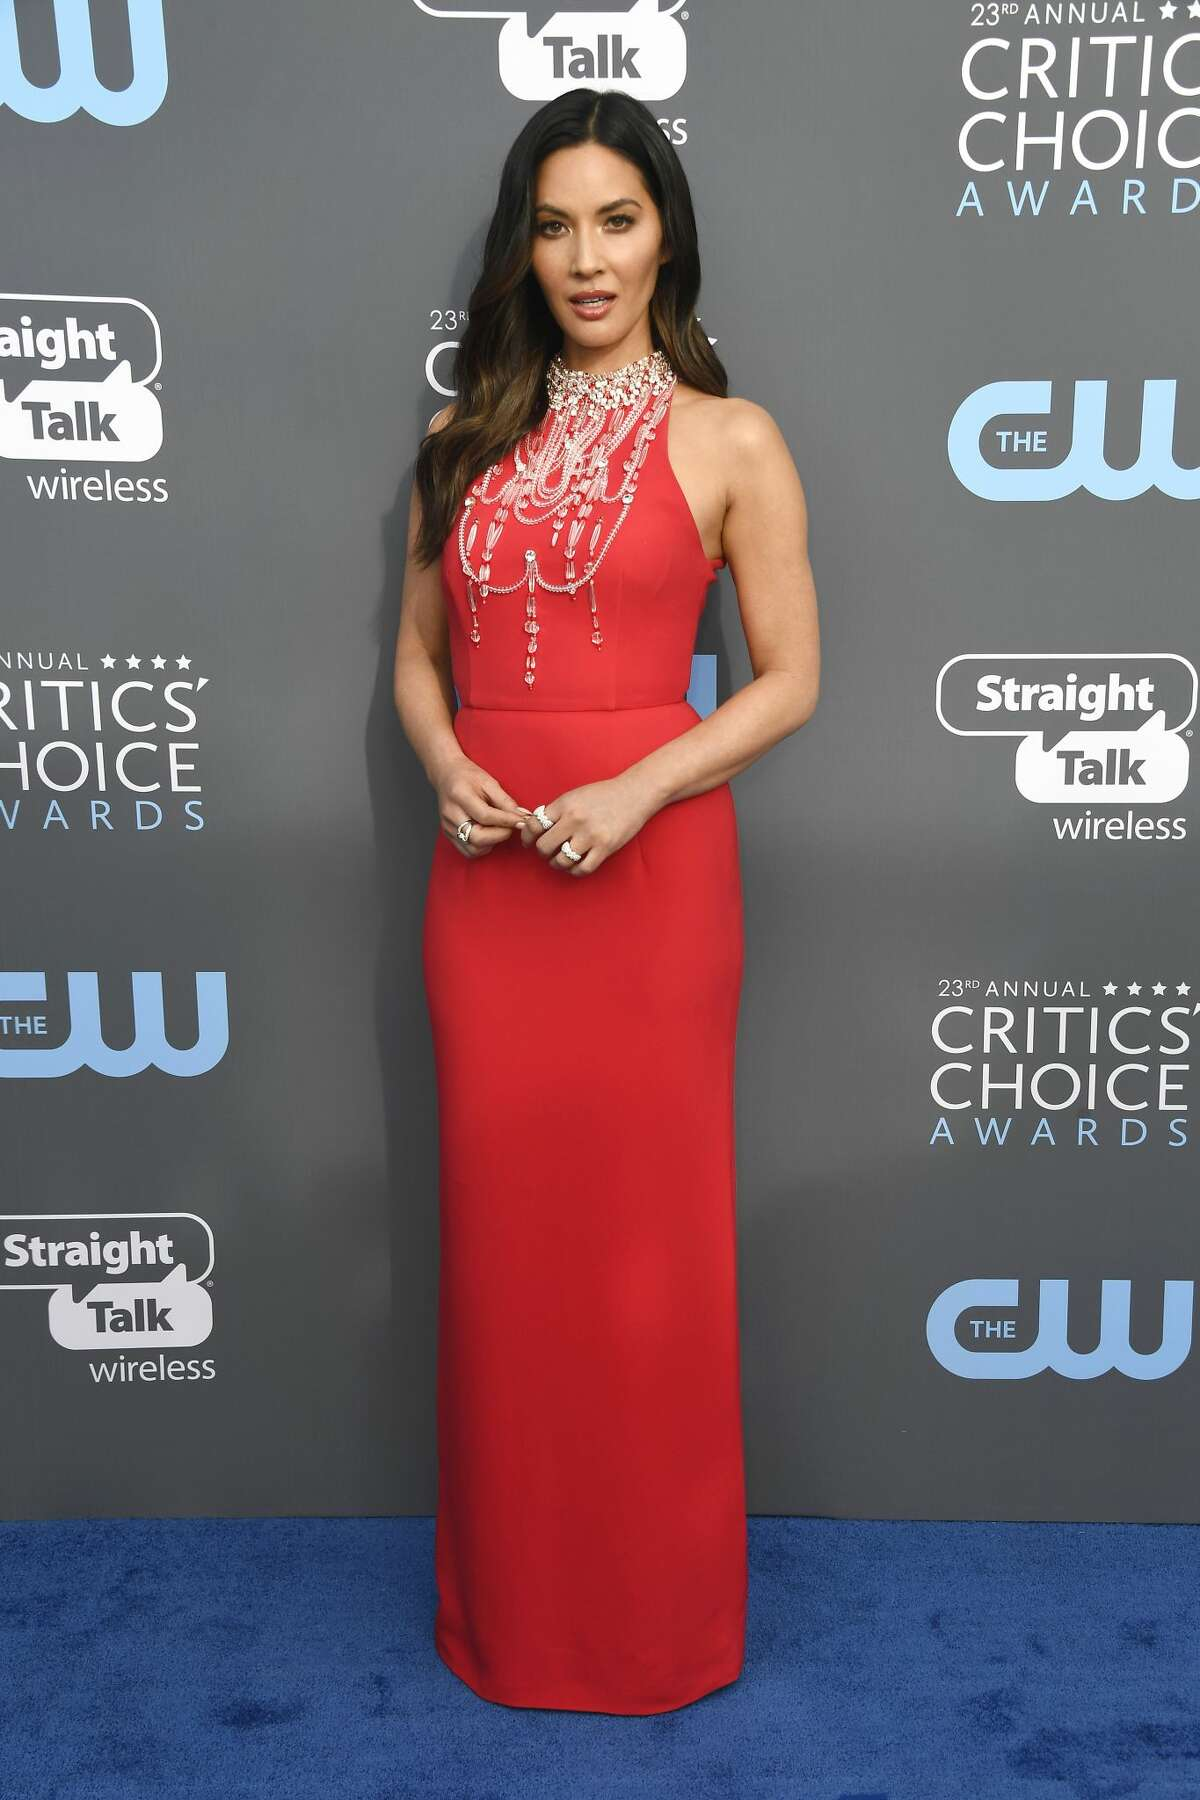 Worst:Olivia Munn, there was no need to put a chandelier on your dress, you were the star tonight.